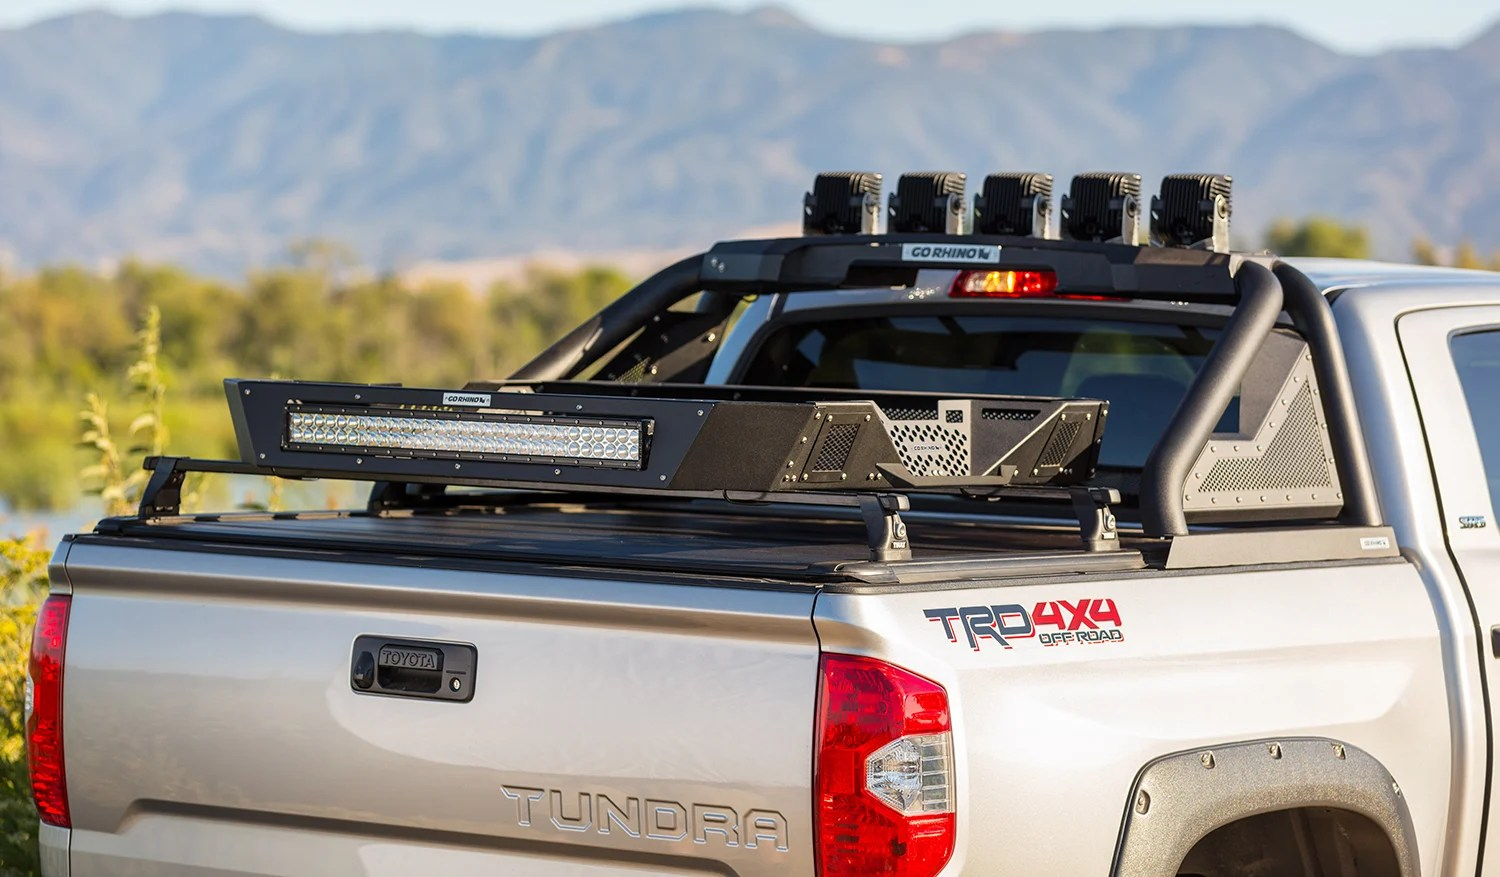 Go Rhino Srm200 Roof Rack Ships Free And Price Match